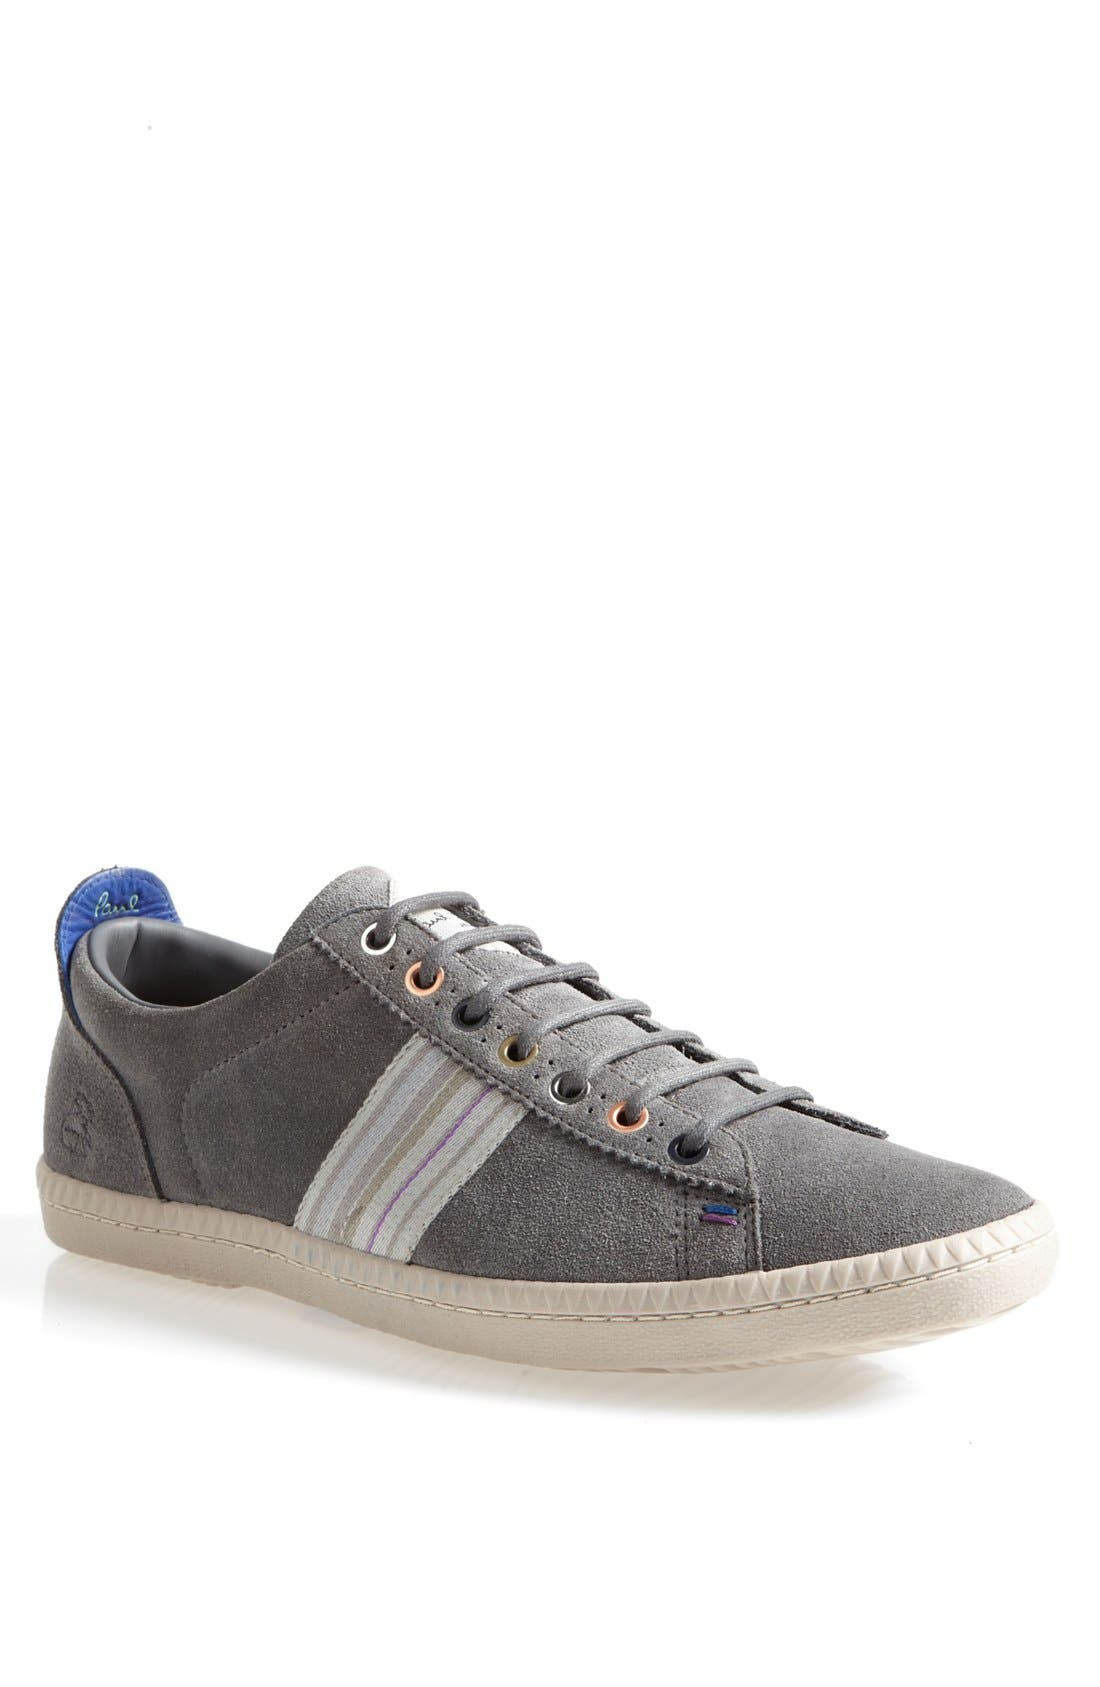 Alternate Image 1 Selected - Paul Smith 'Osmo' Sneaker